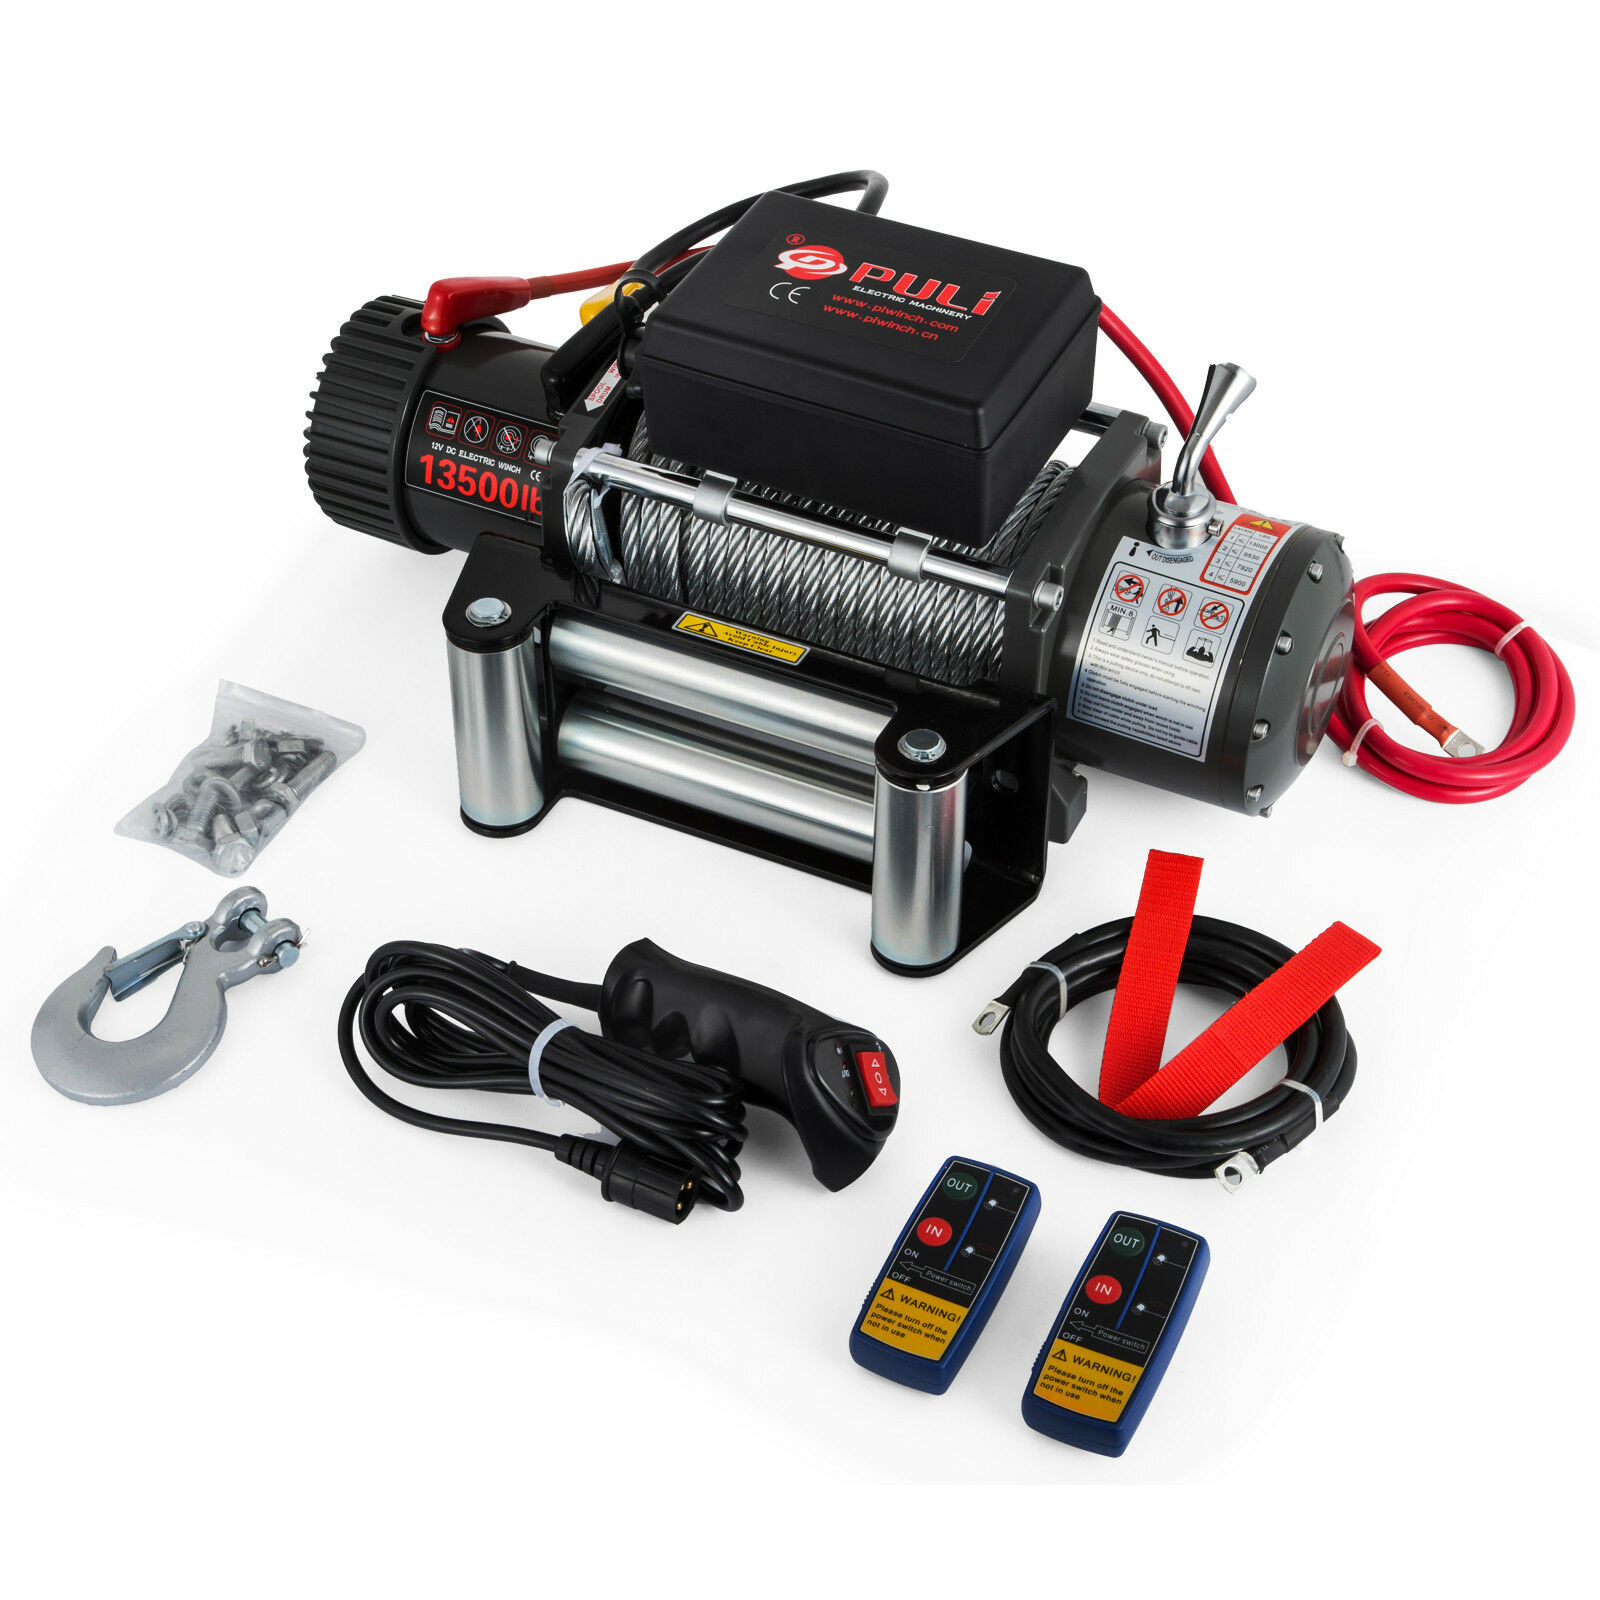 Free Shipping Electric Winch Offroad 4x4 Motor Winch Cable 12V 13500lbs 6123.5KG 5KW